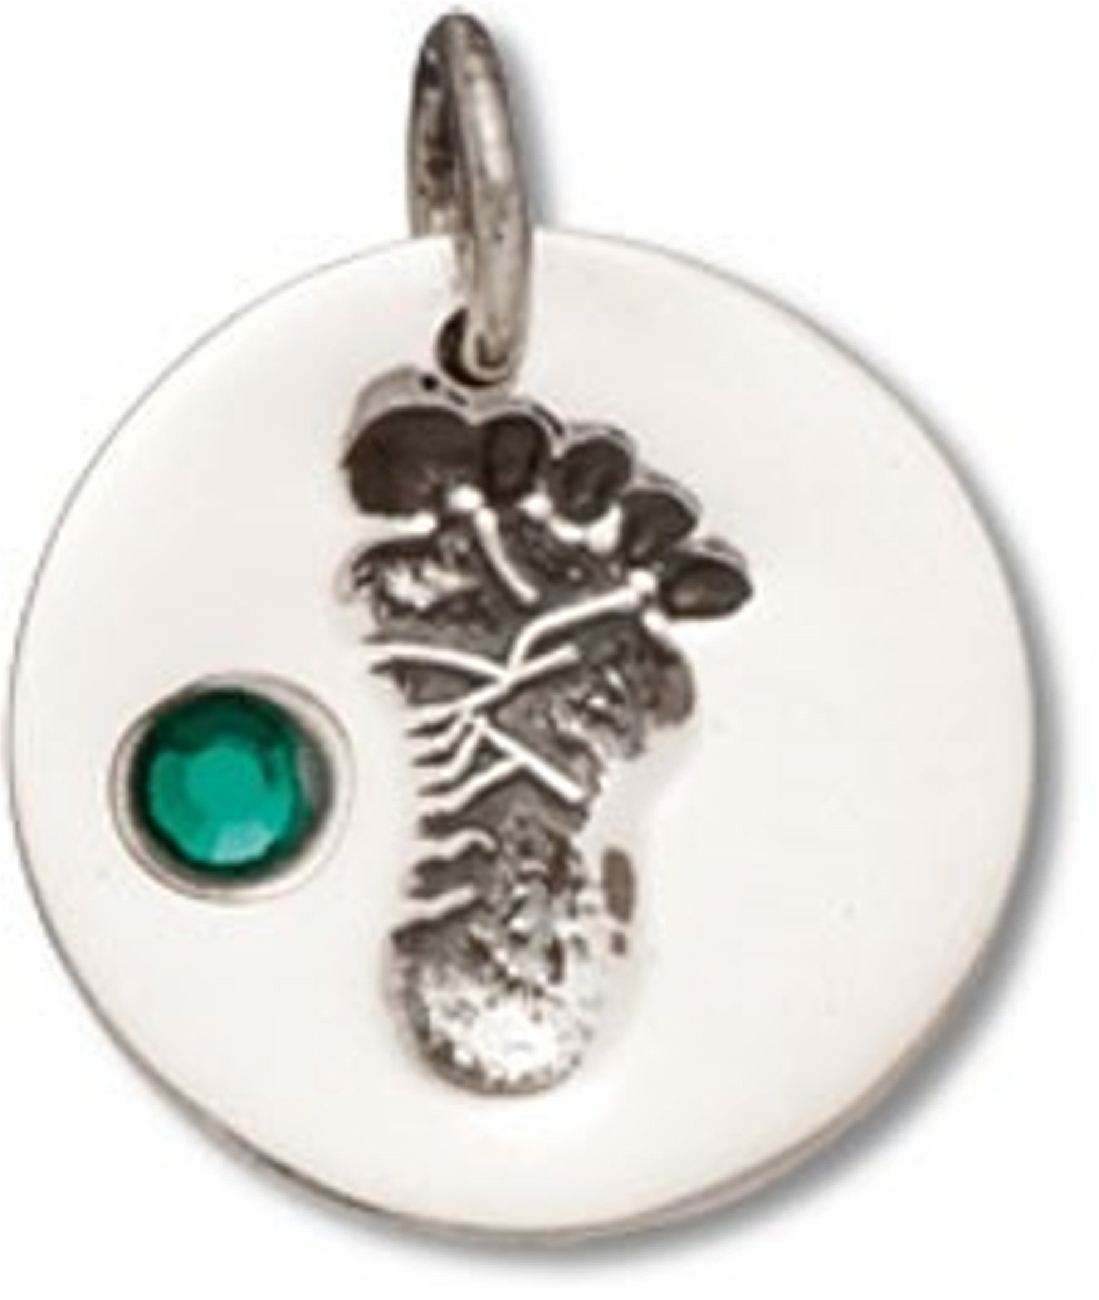 Round Green May Cubic Zirconia Birthstone Baby Footprint Charm